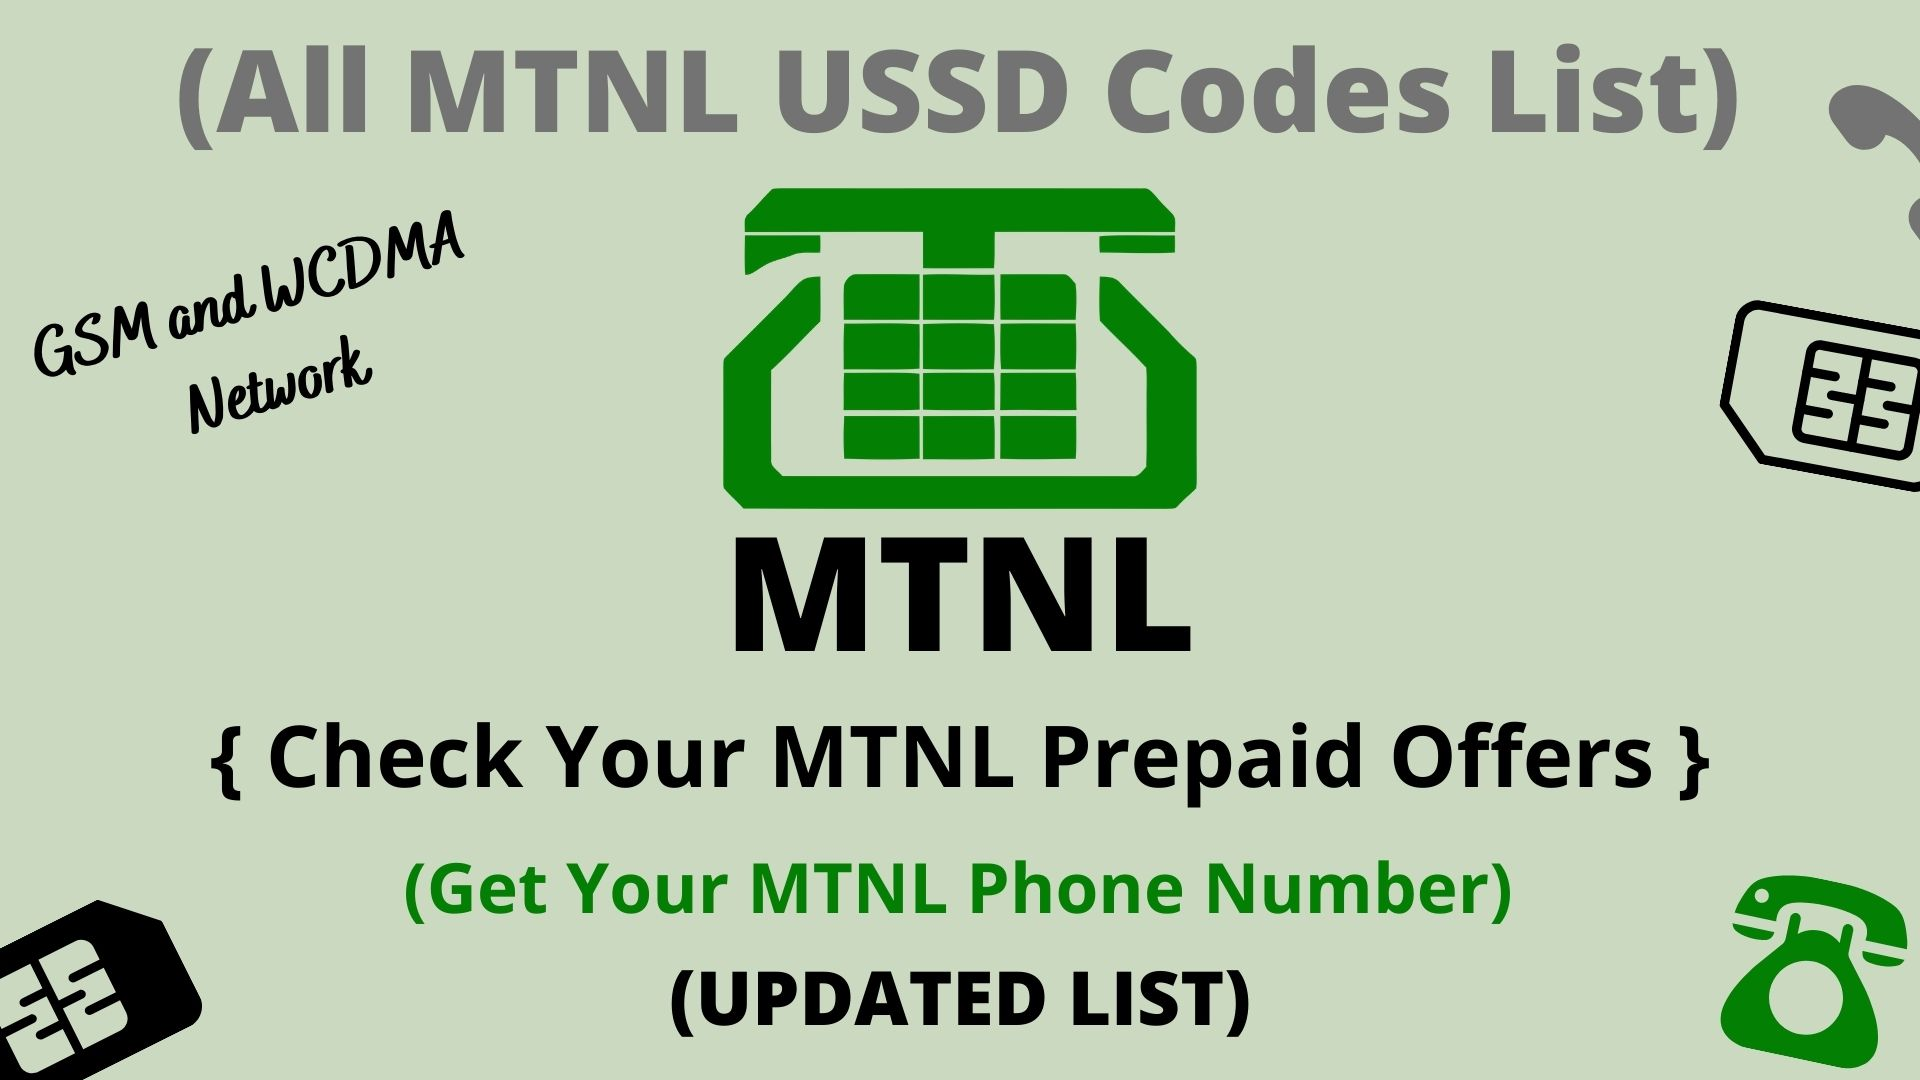 All MTNL USSD Codes List